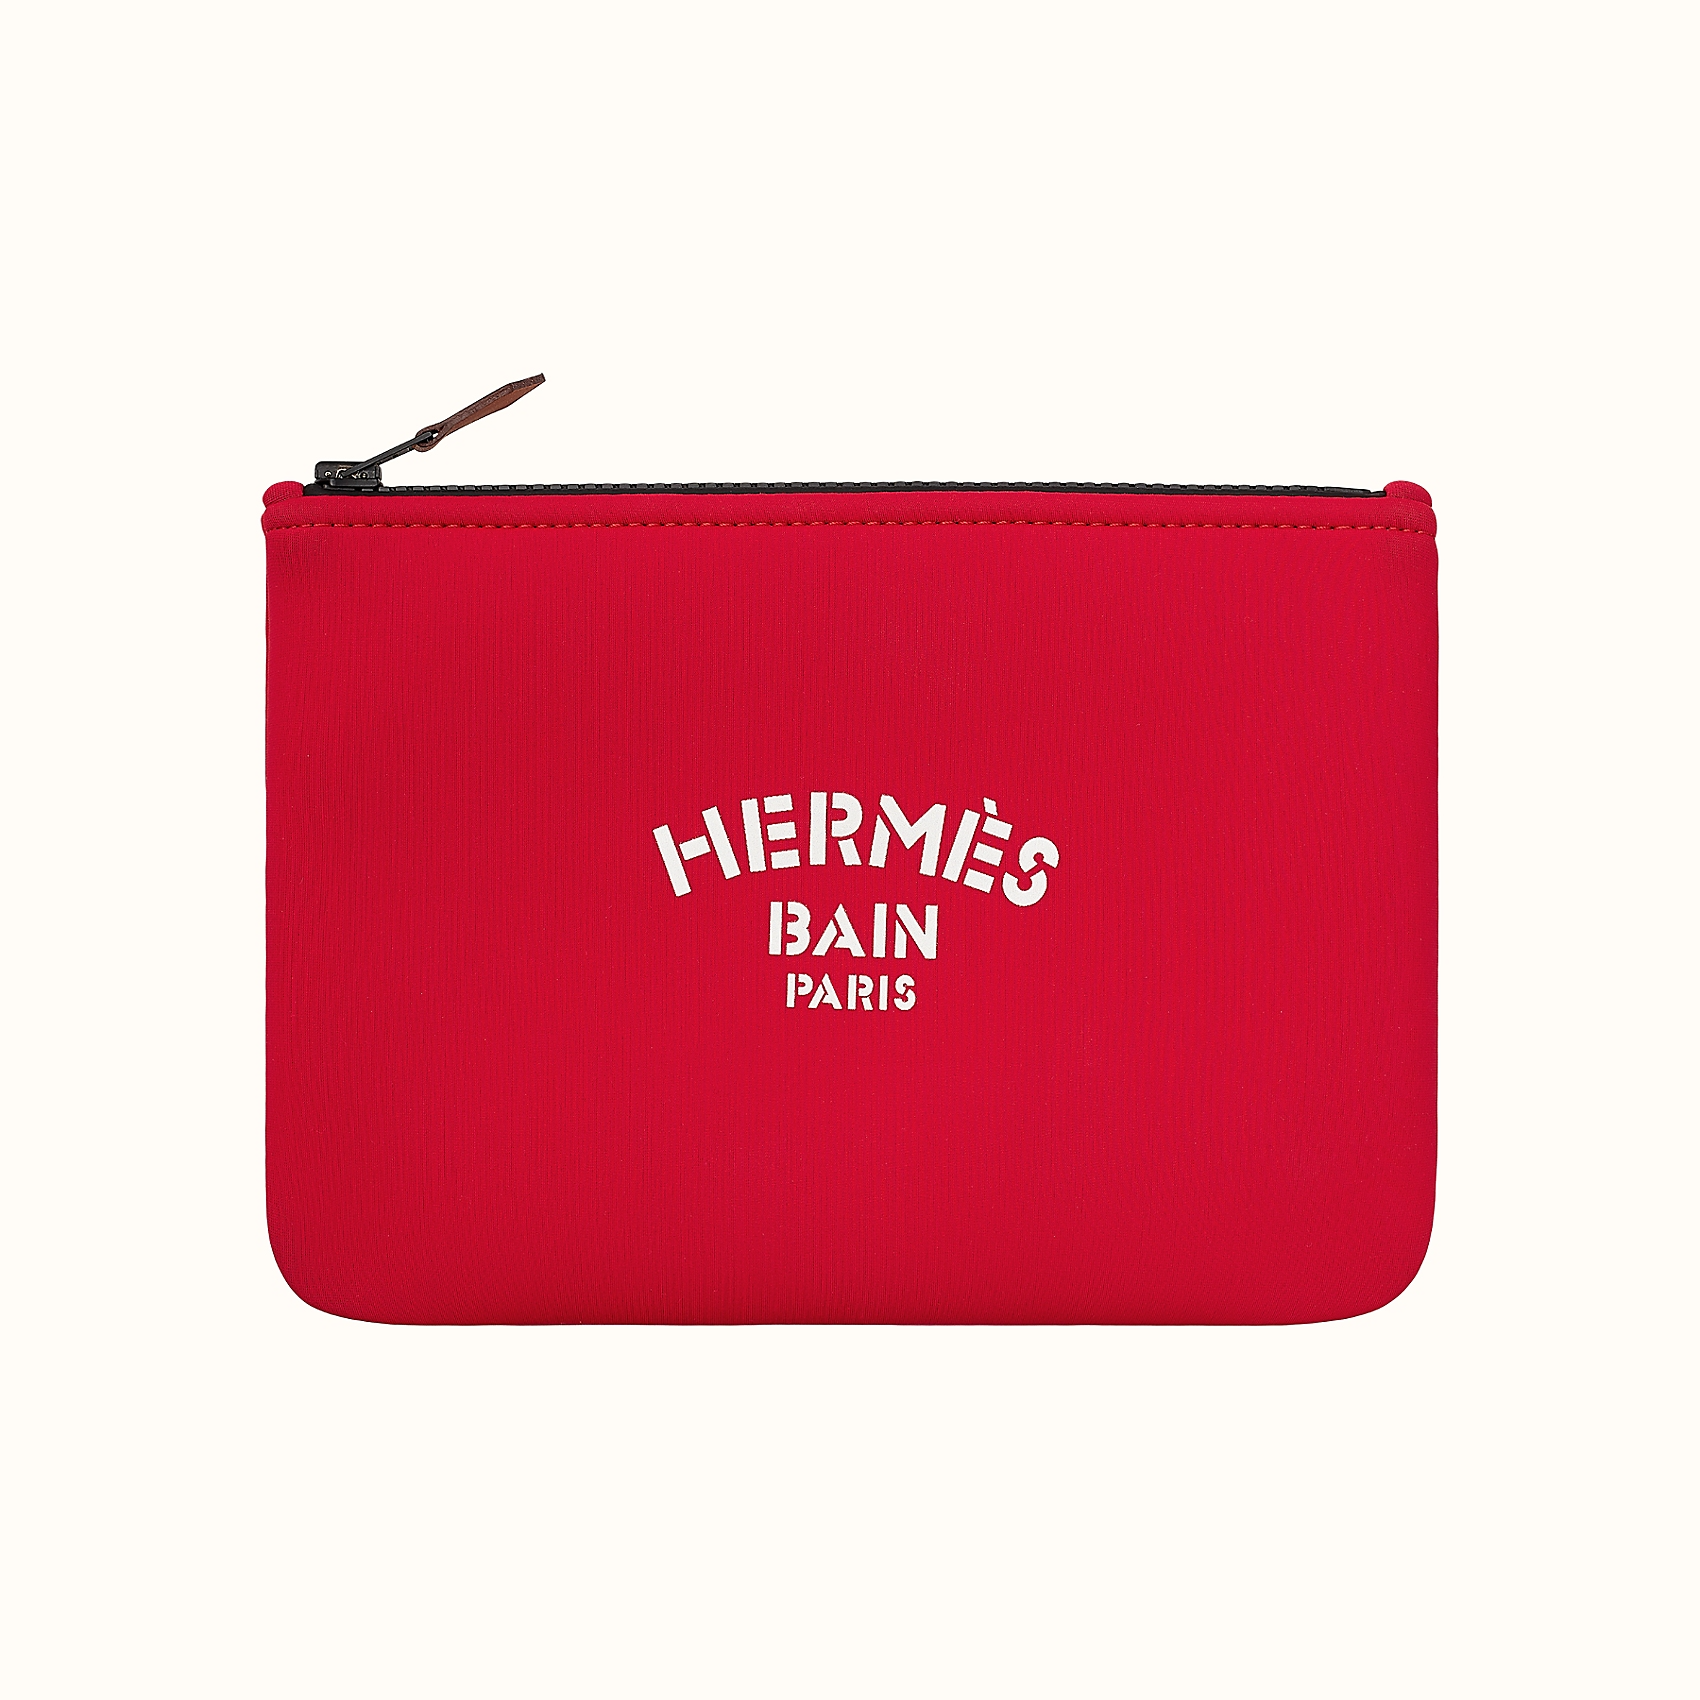 HERMES Quetzal Neobain case, small model - Rouge